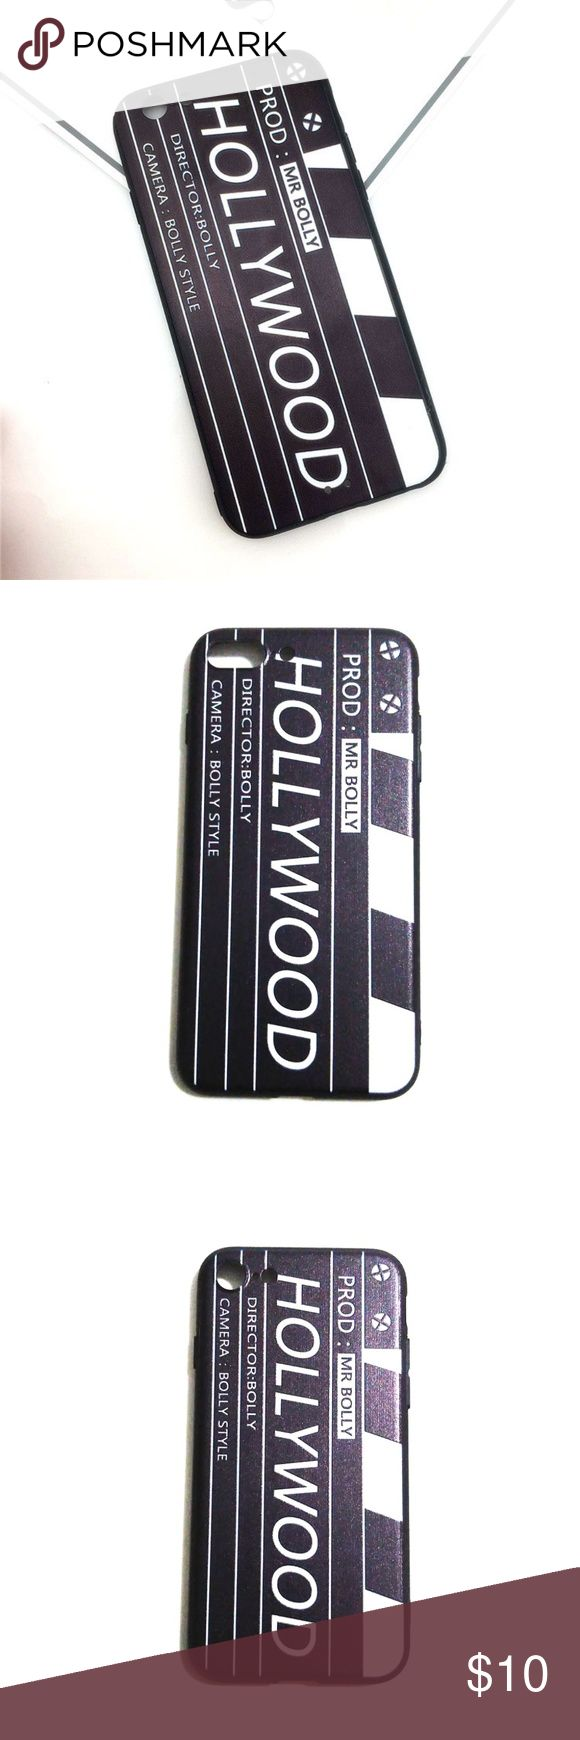 iPhone Case 6/6s 7/7 Plus NEW Style iPhone Case Innovative Design Beautiful and Fashion  THIS IPHONE CASE AVAILABLE FOR iPhone 6/6S iPhone 6/6S Plus iPhone 7  MORE OPTIONS: Vehicle Number Plate of Los Angeles LM.299  Vehicle Number Plate of Oklahoma FU 724 The Beatles Hollywood Clapperboard Elephant with Standing Ring Other